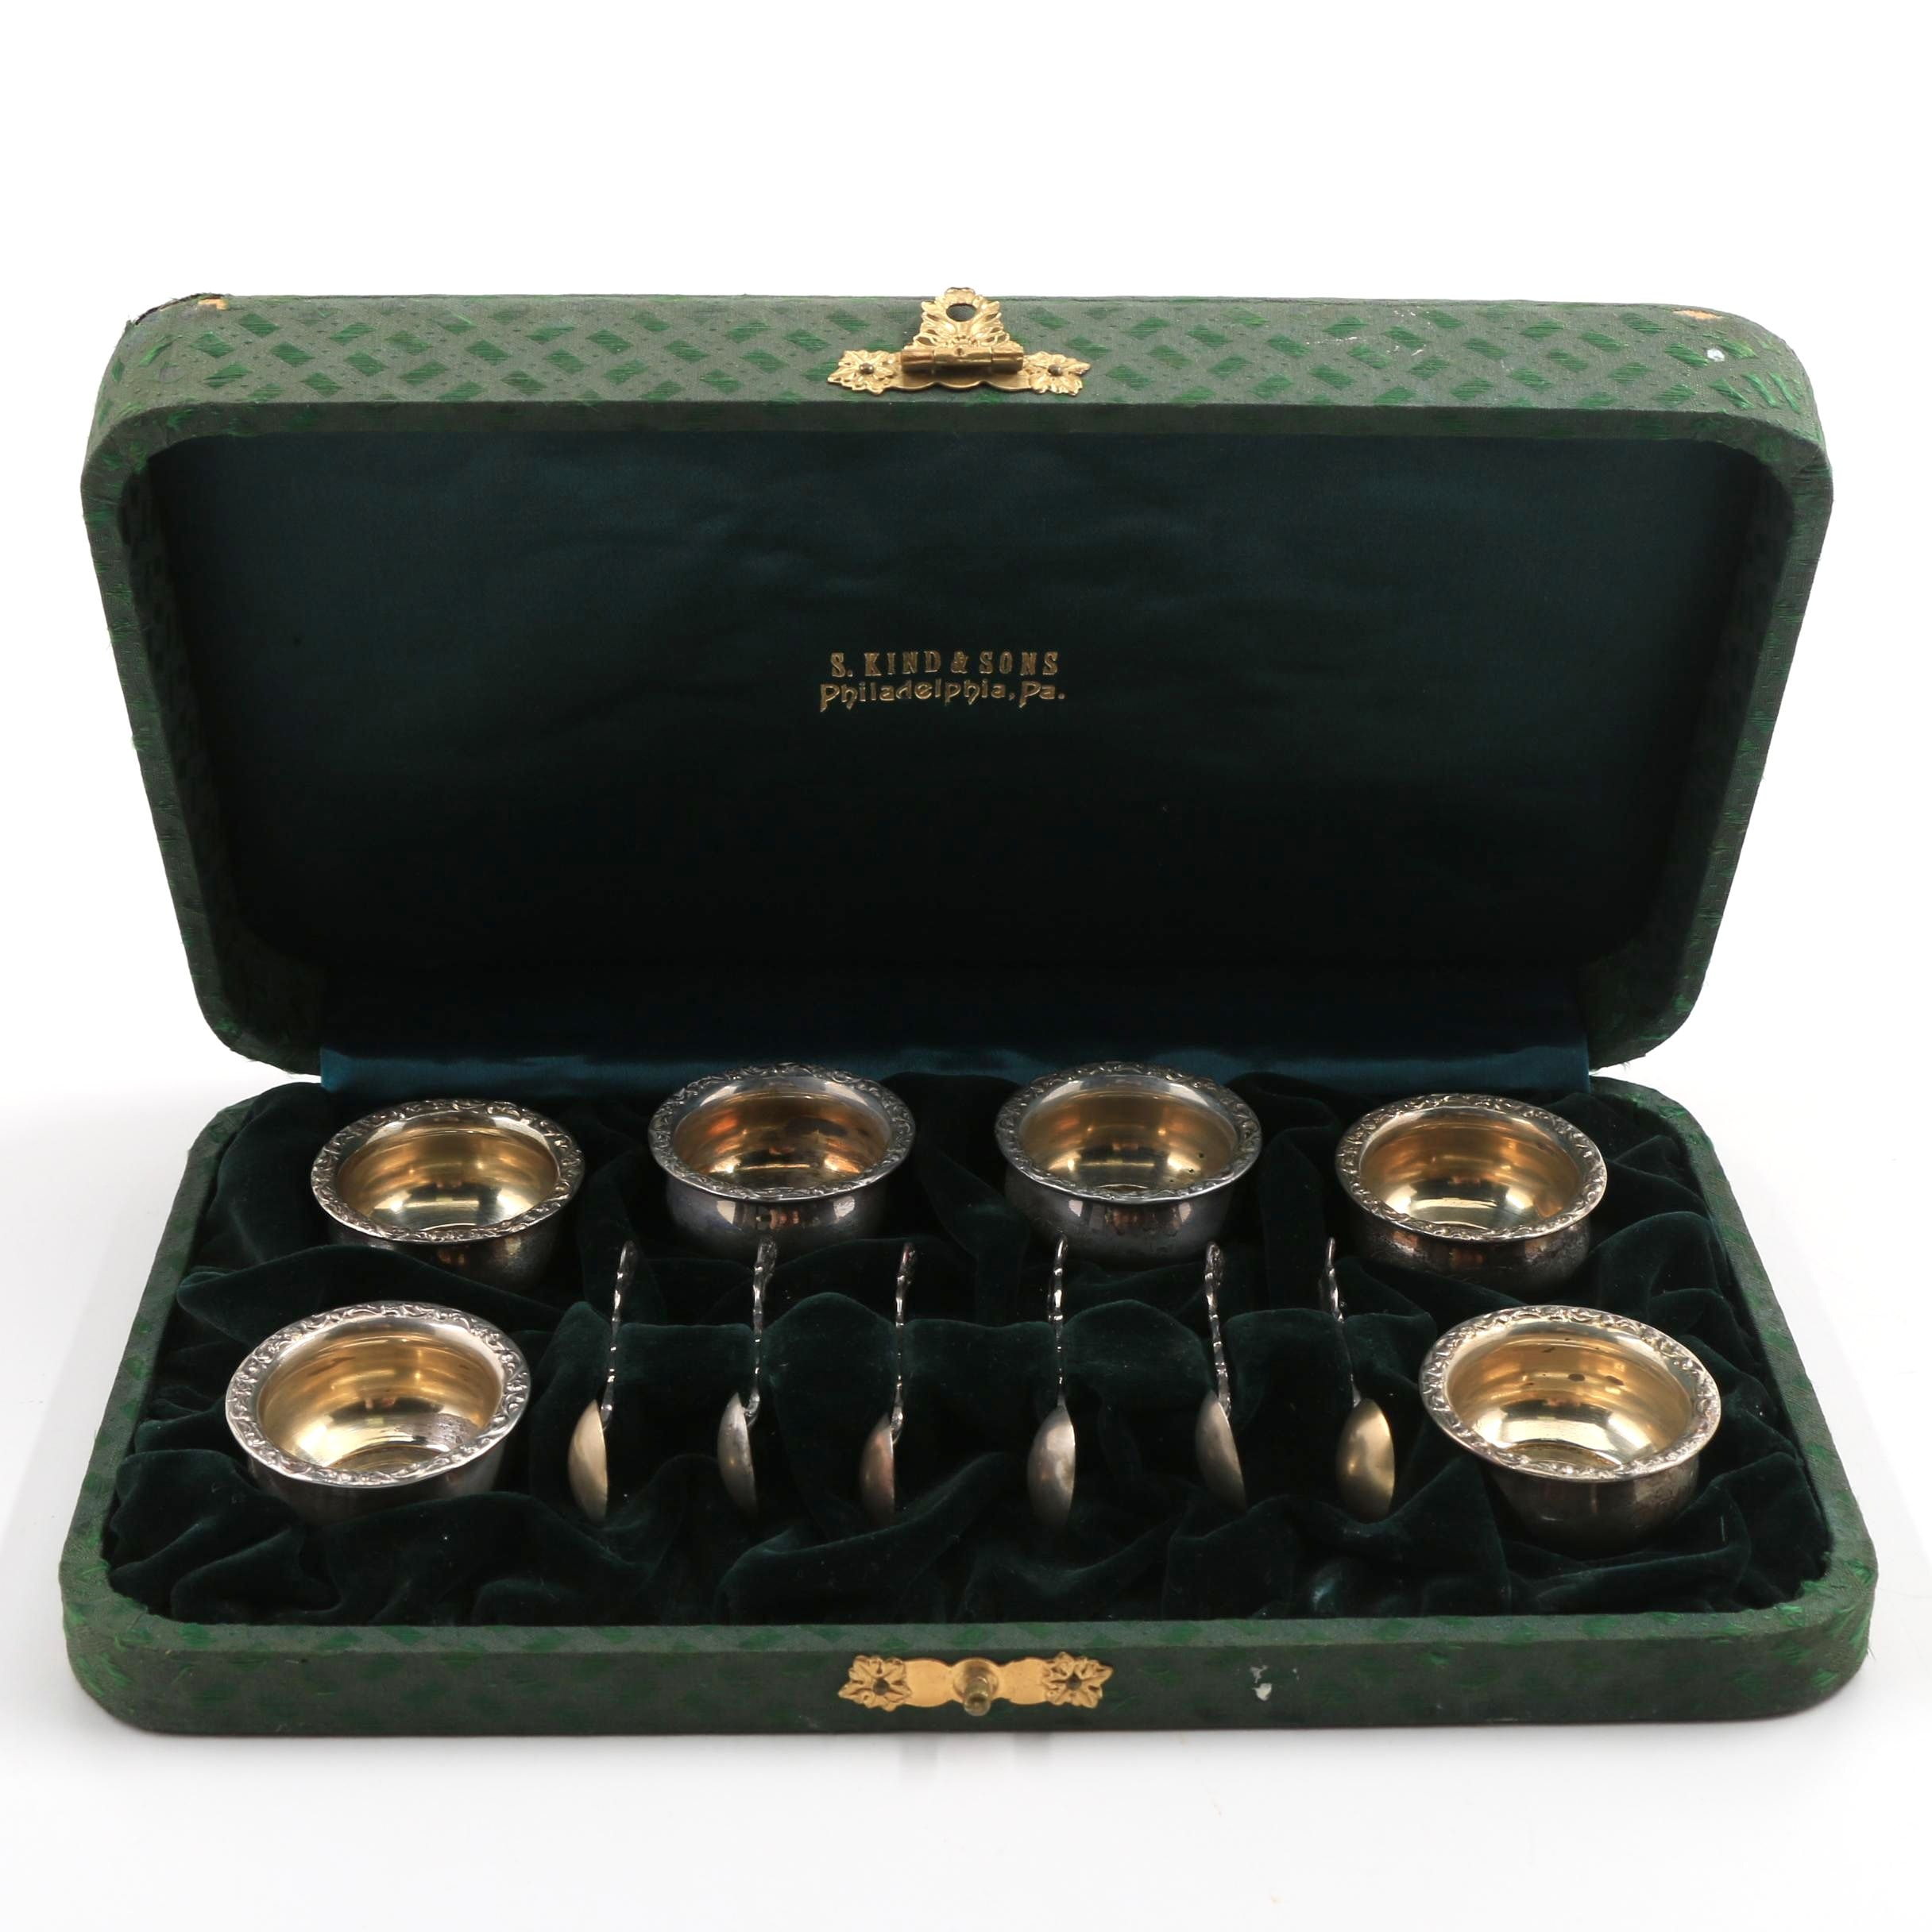 S. Kind & Sons Sterling Silver Salts and Spoons in Presentation Case